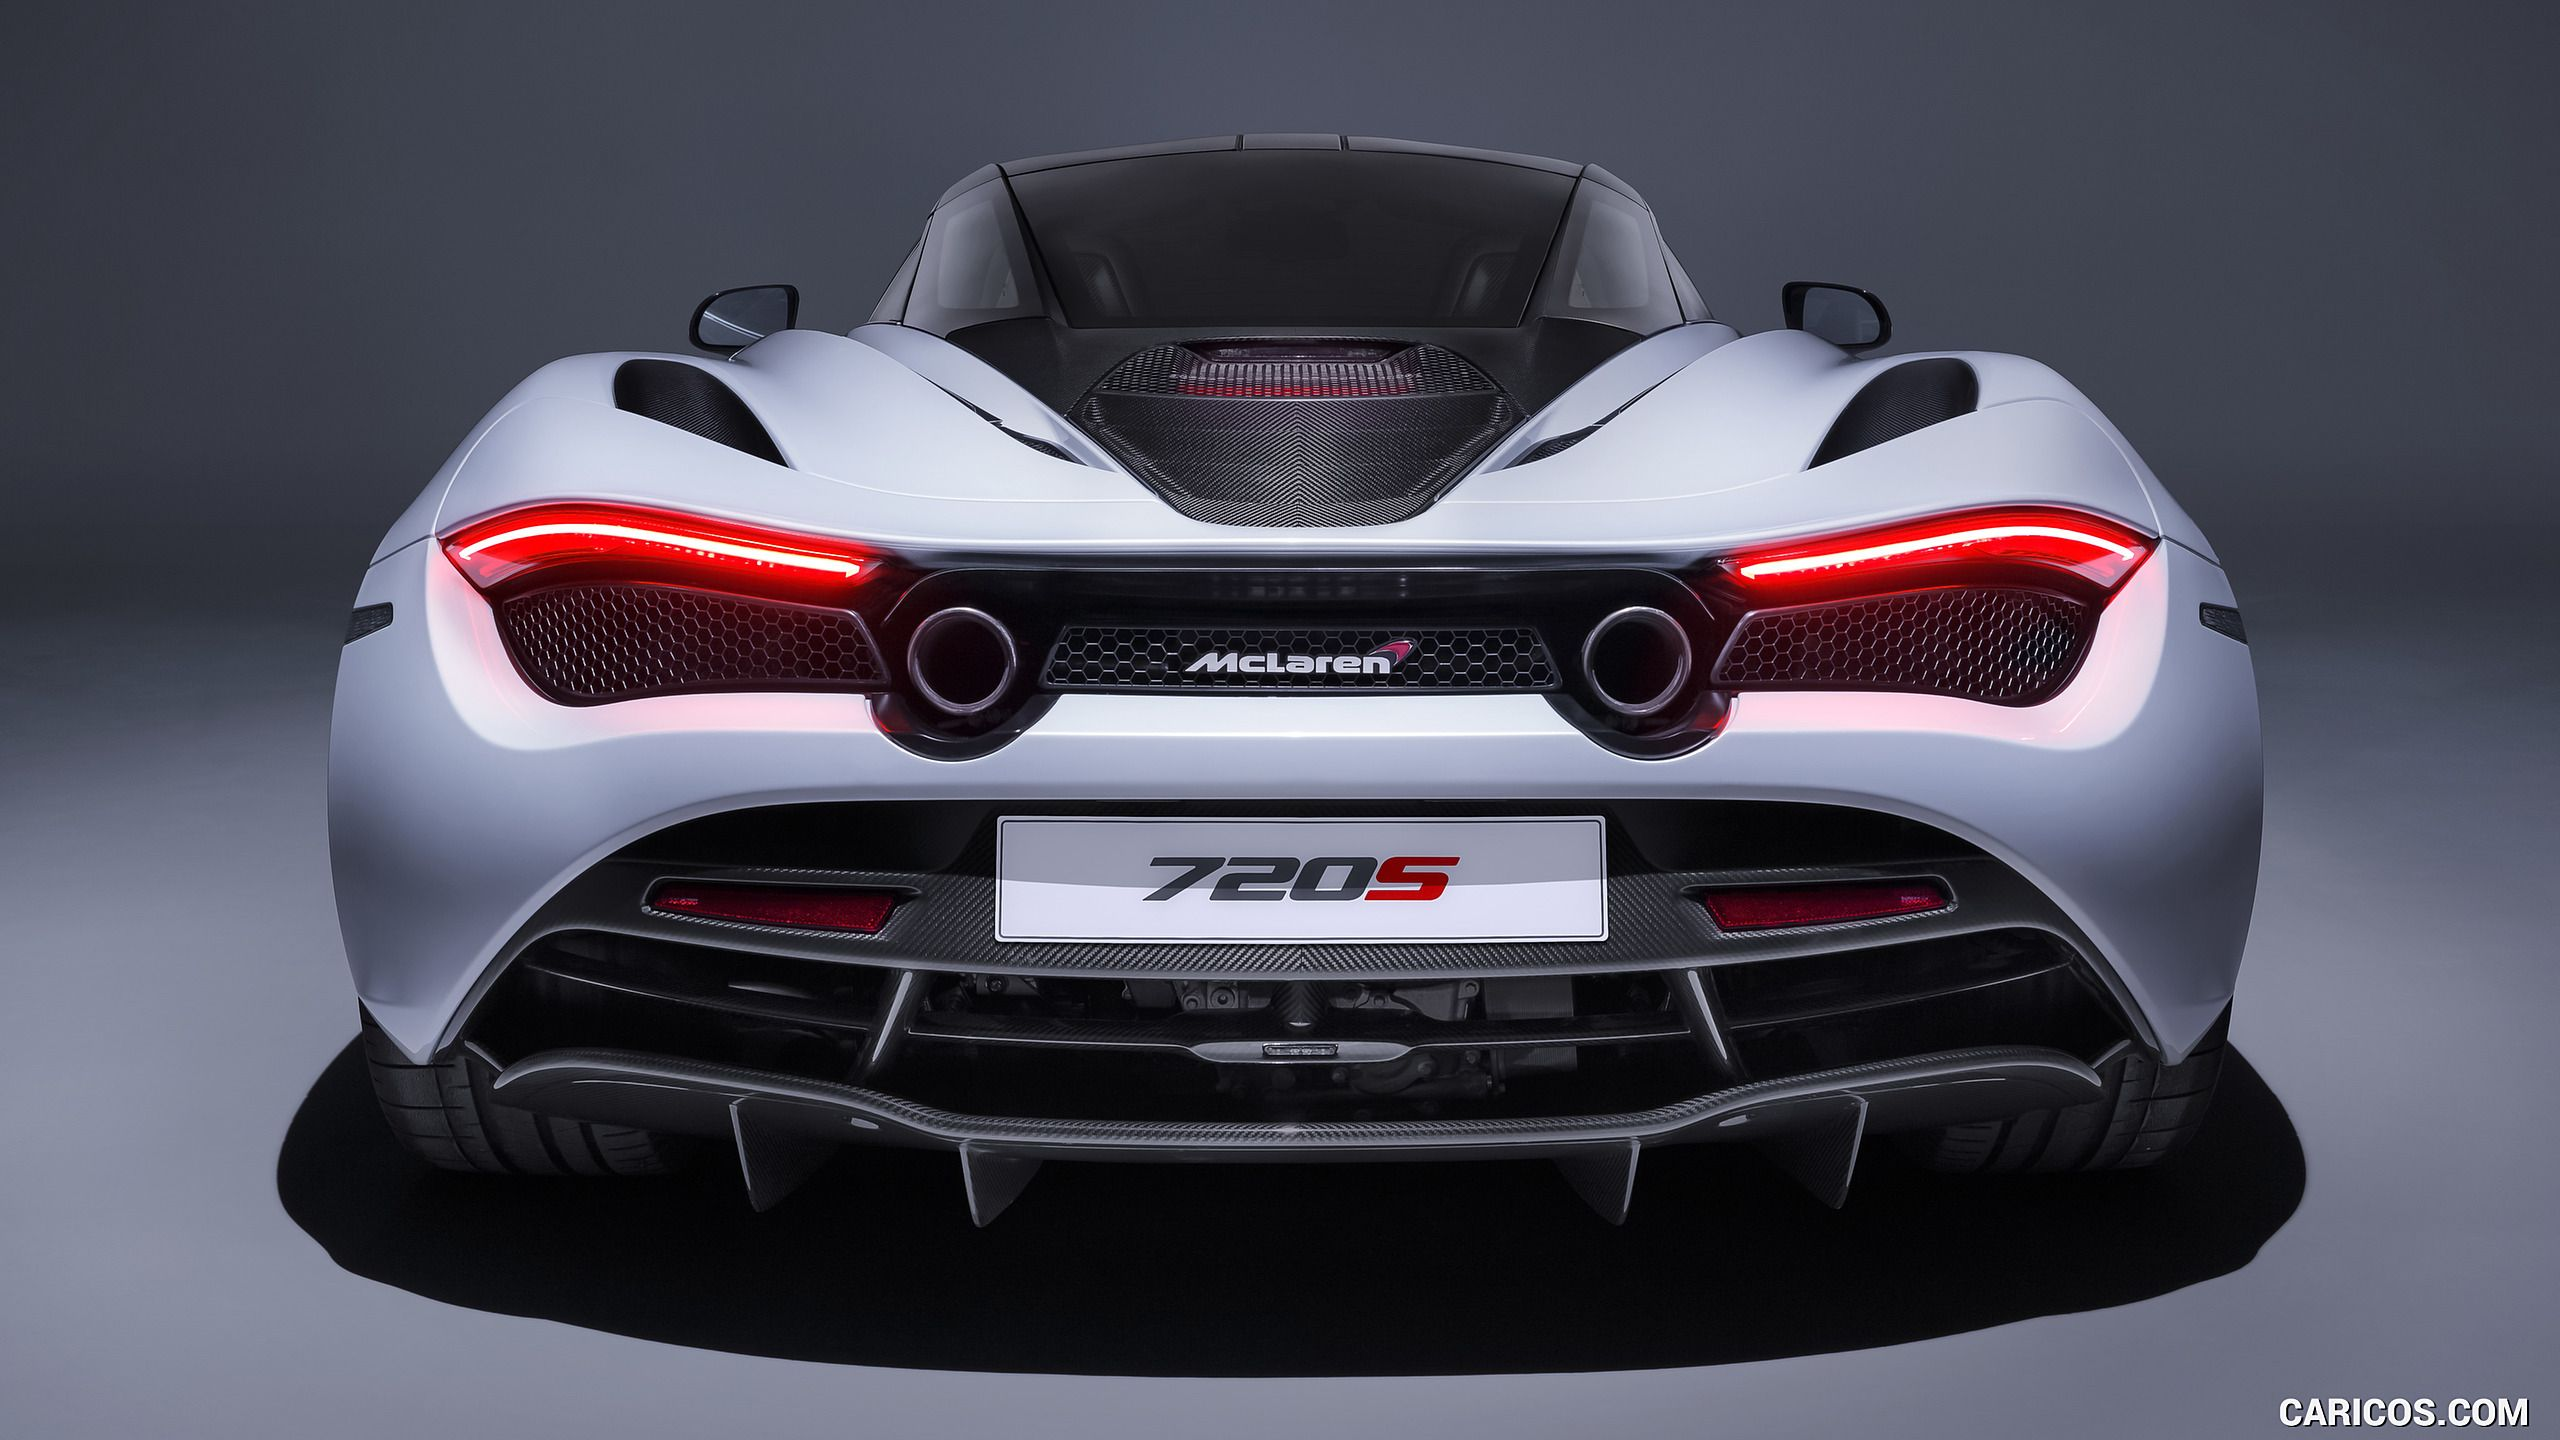 2018 mclaren 720s wallpaper wallpapershtml